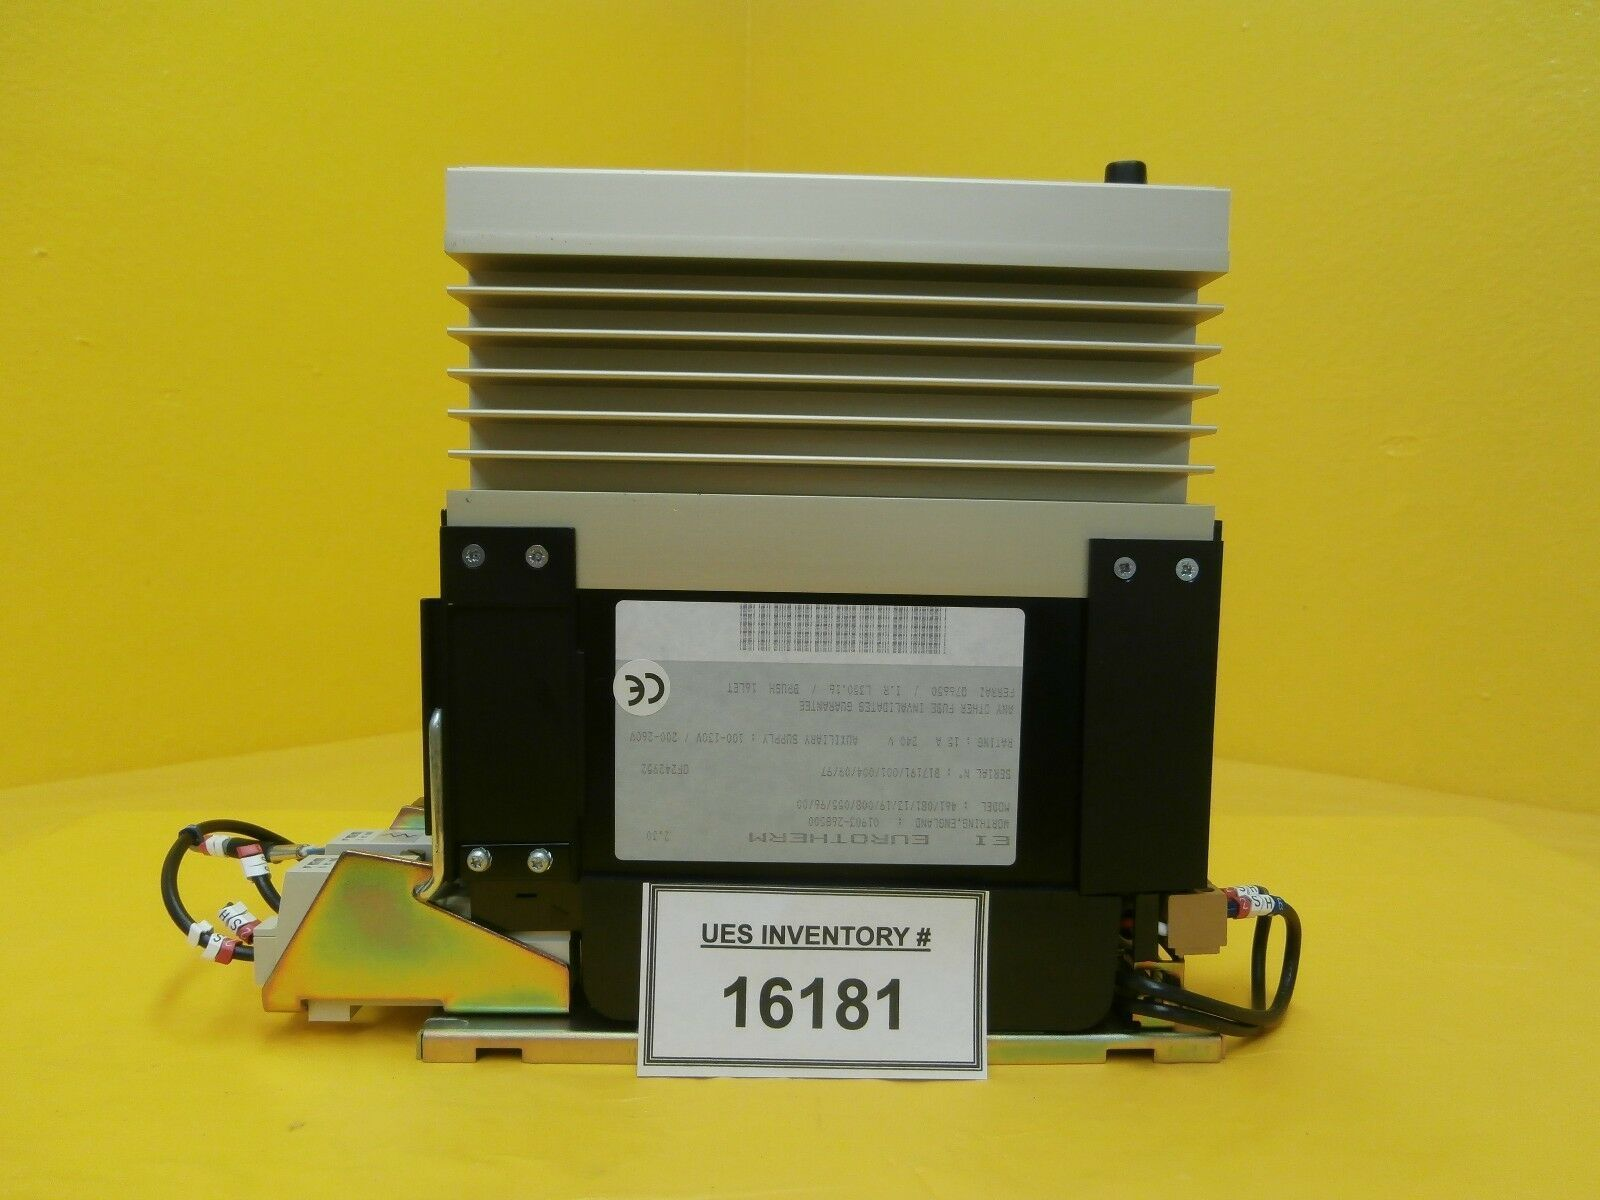 Eurotherm 461/081/13/19/008/055/96/00 Analogue Input Thyristor Unit 461 Used